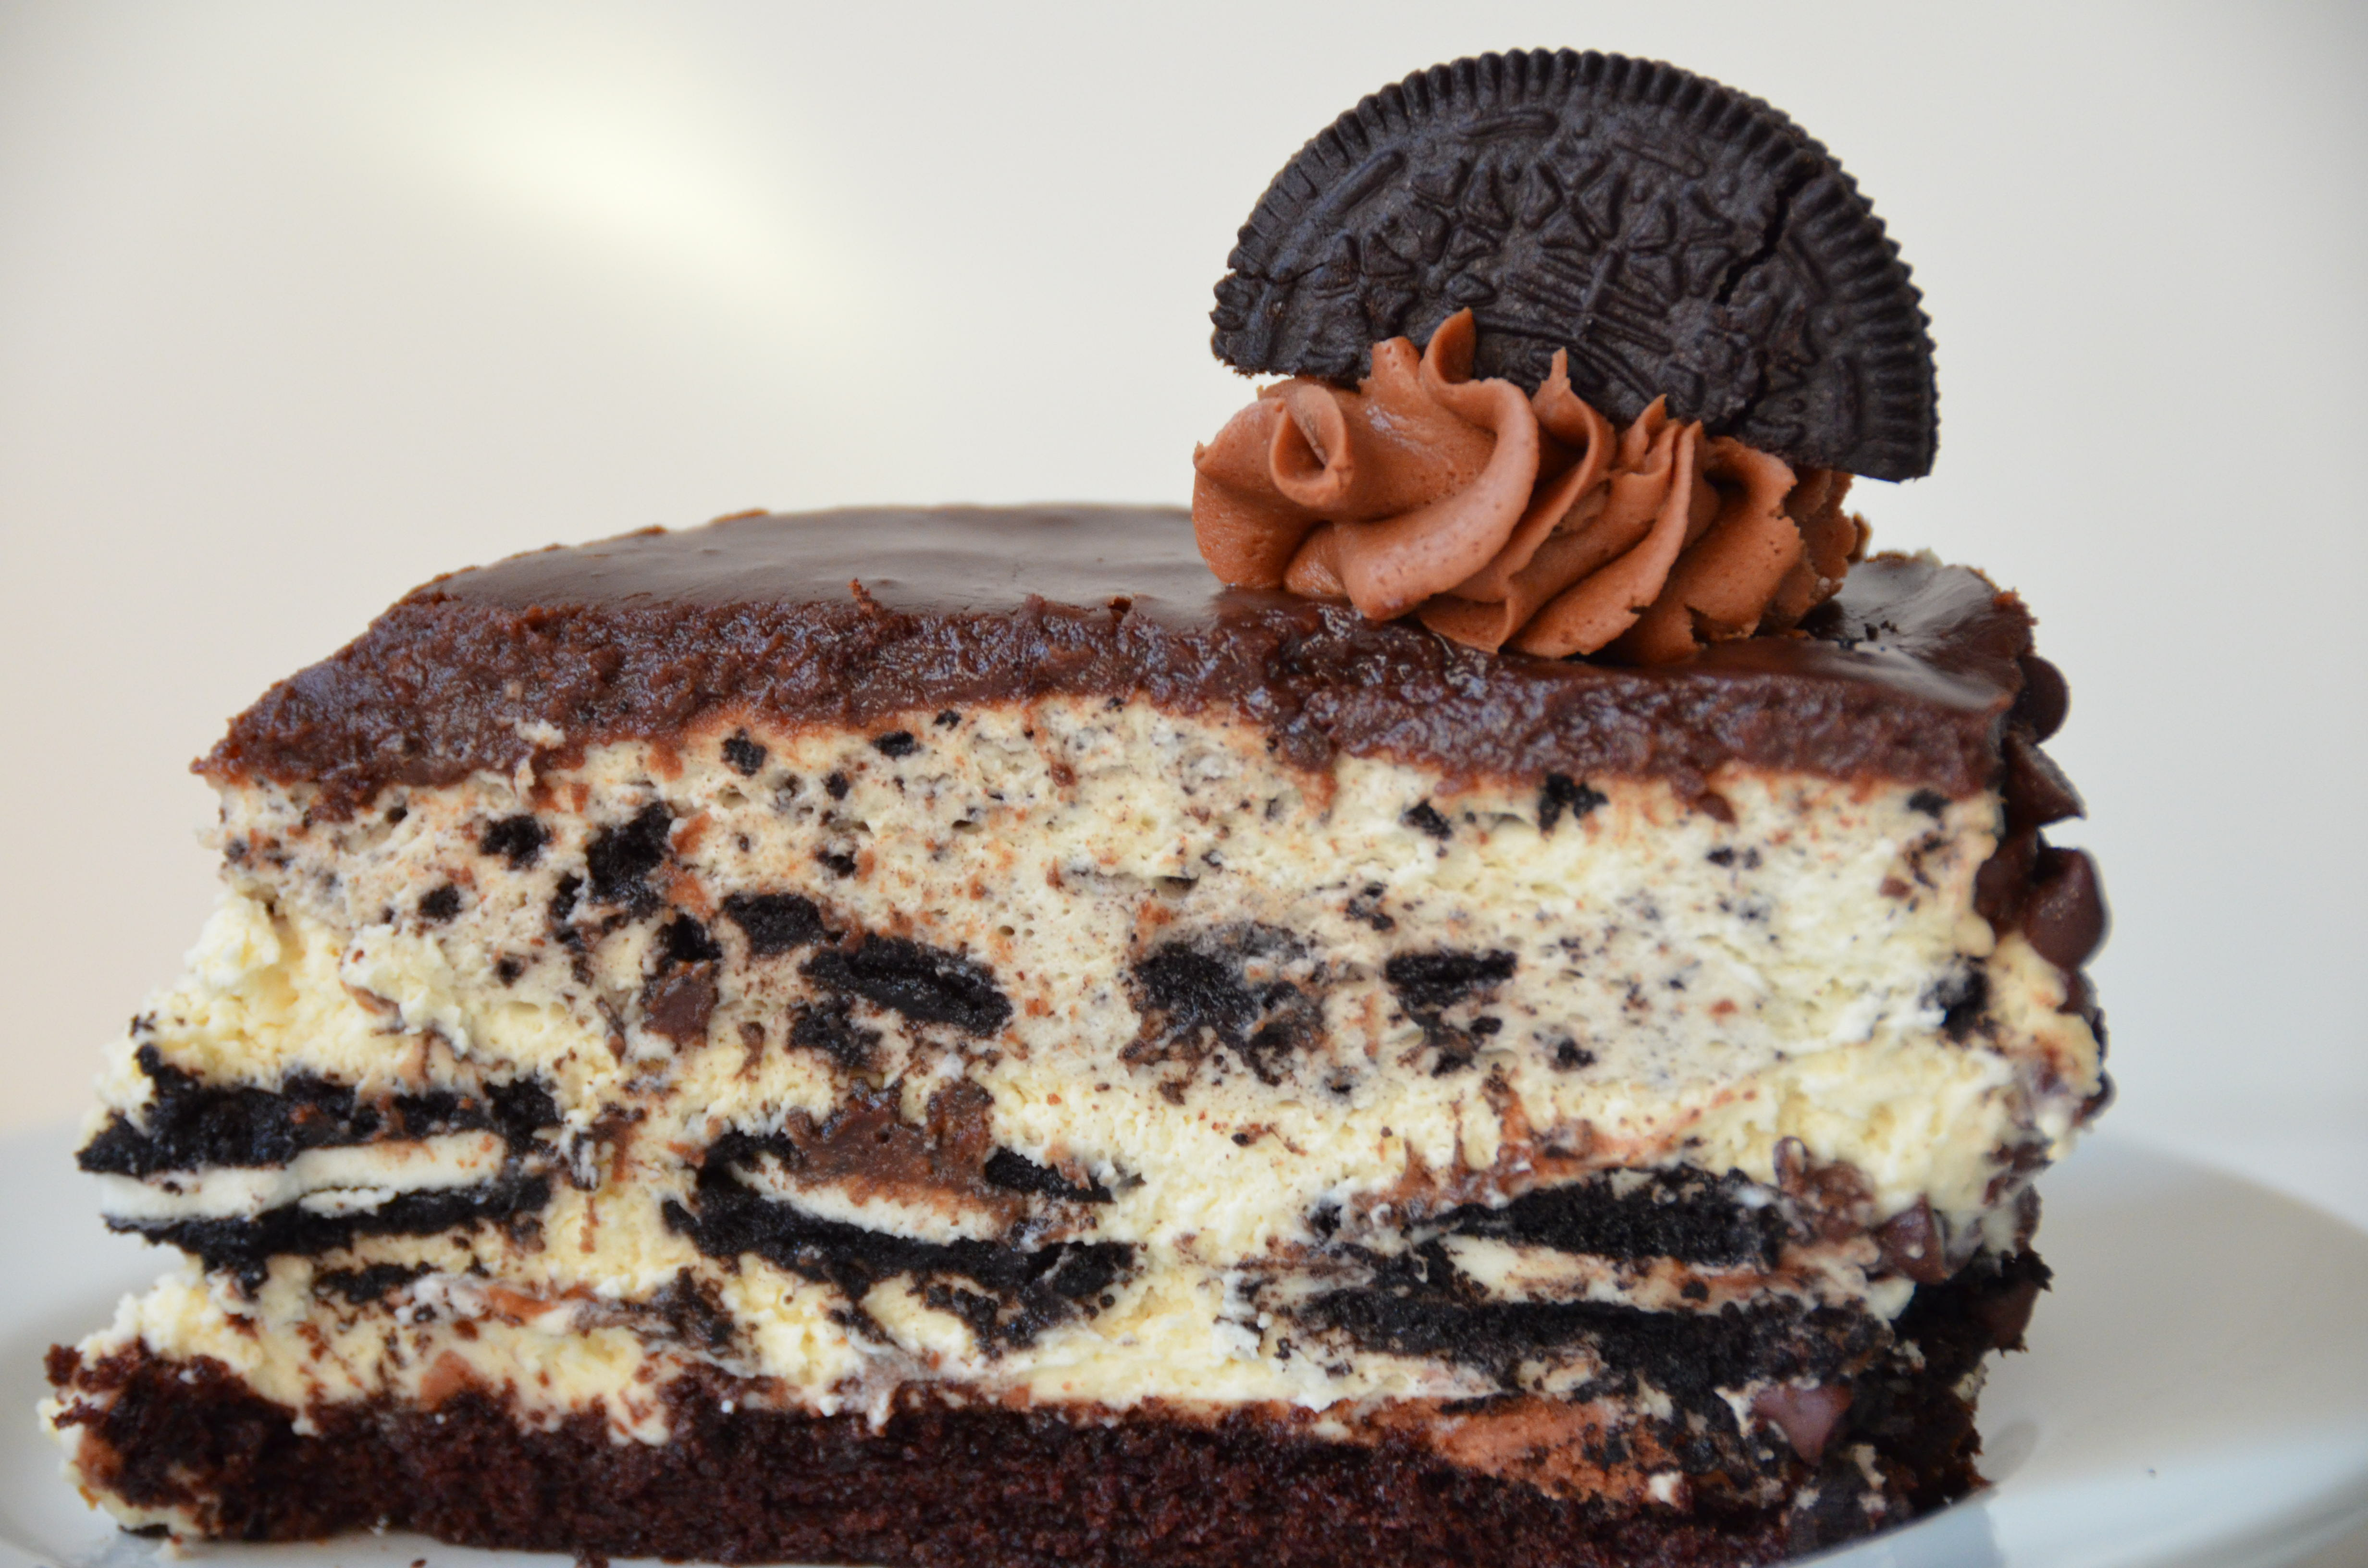 Oreo Dream Extreme Cheesecake Extremely Good Song From Lord Huron